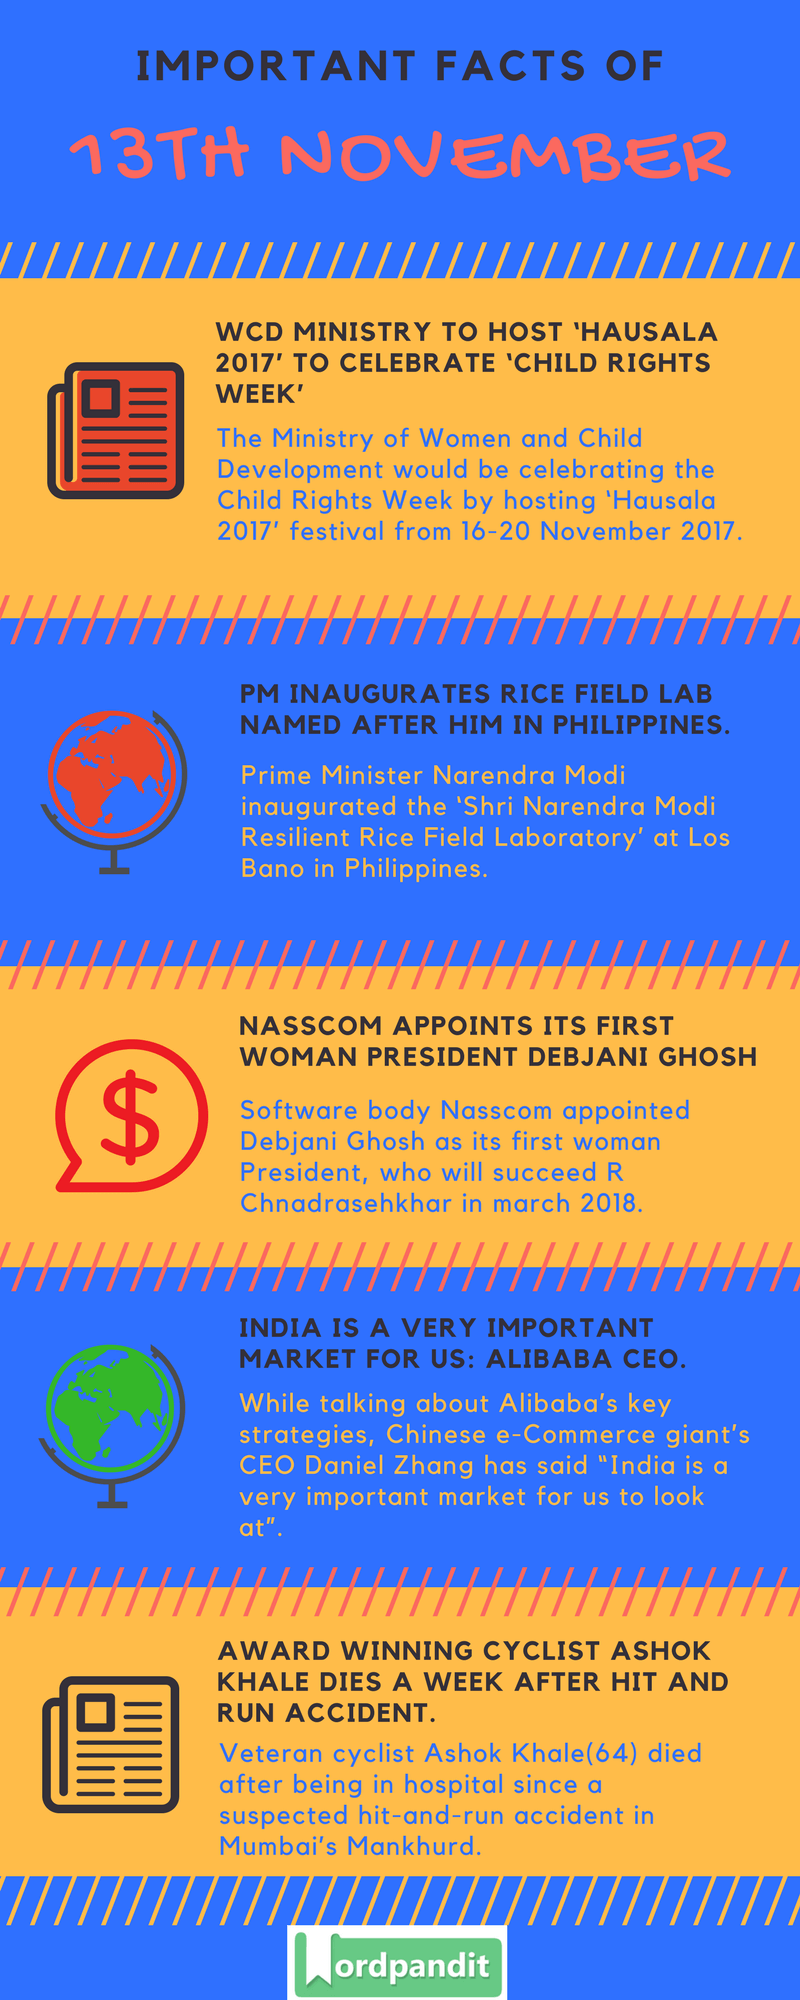 Daily-Current-Affairs-13-november-2017-Current-Affairs-Quiz-november-13-2017-Current-Affairs-Infographic